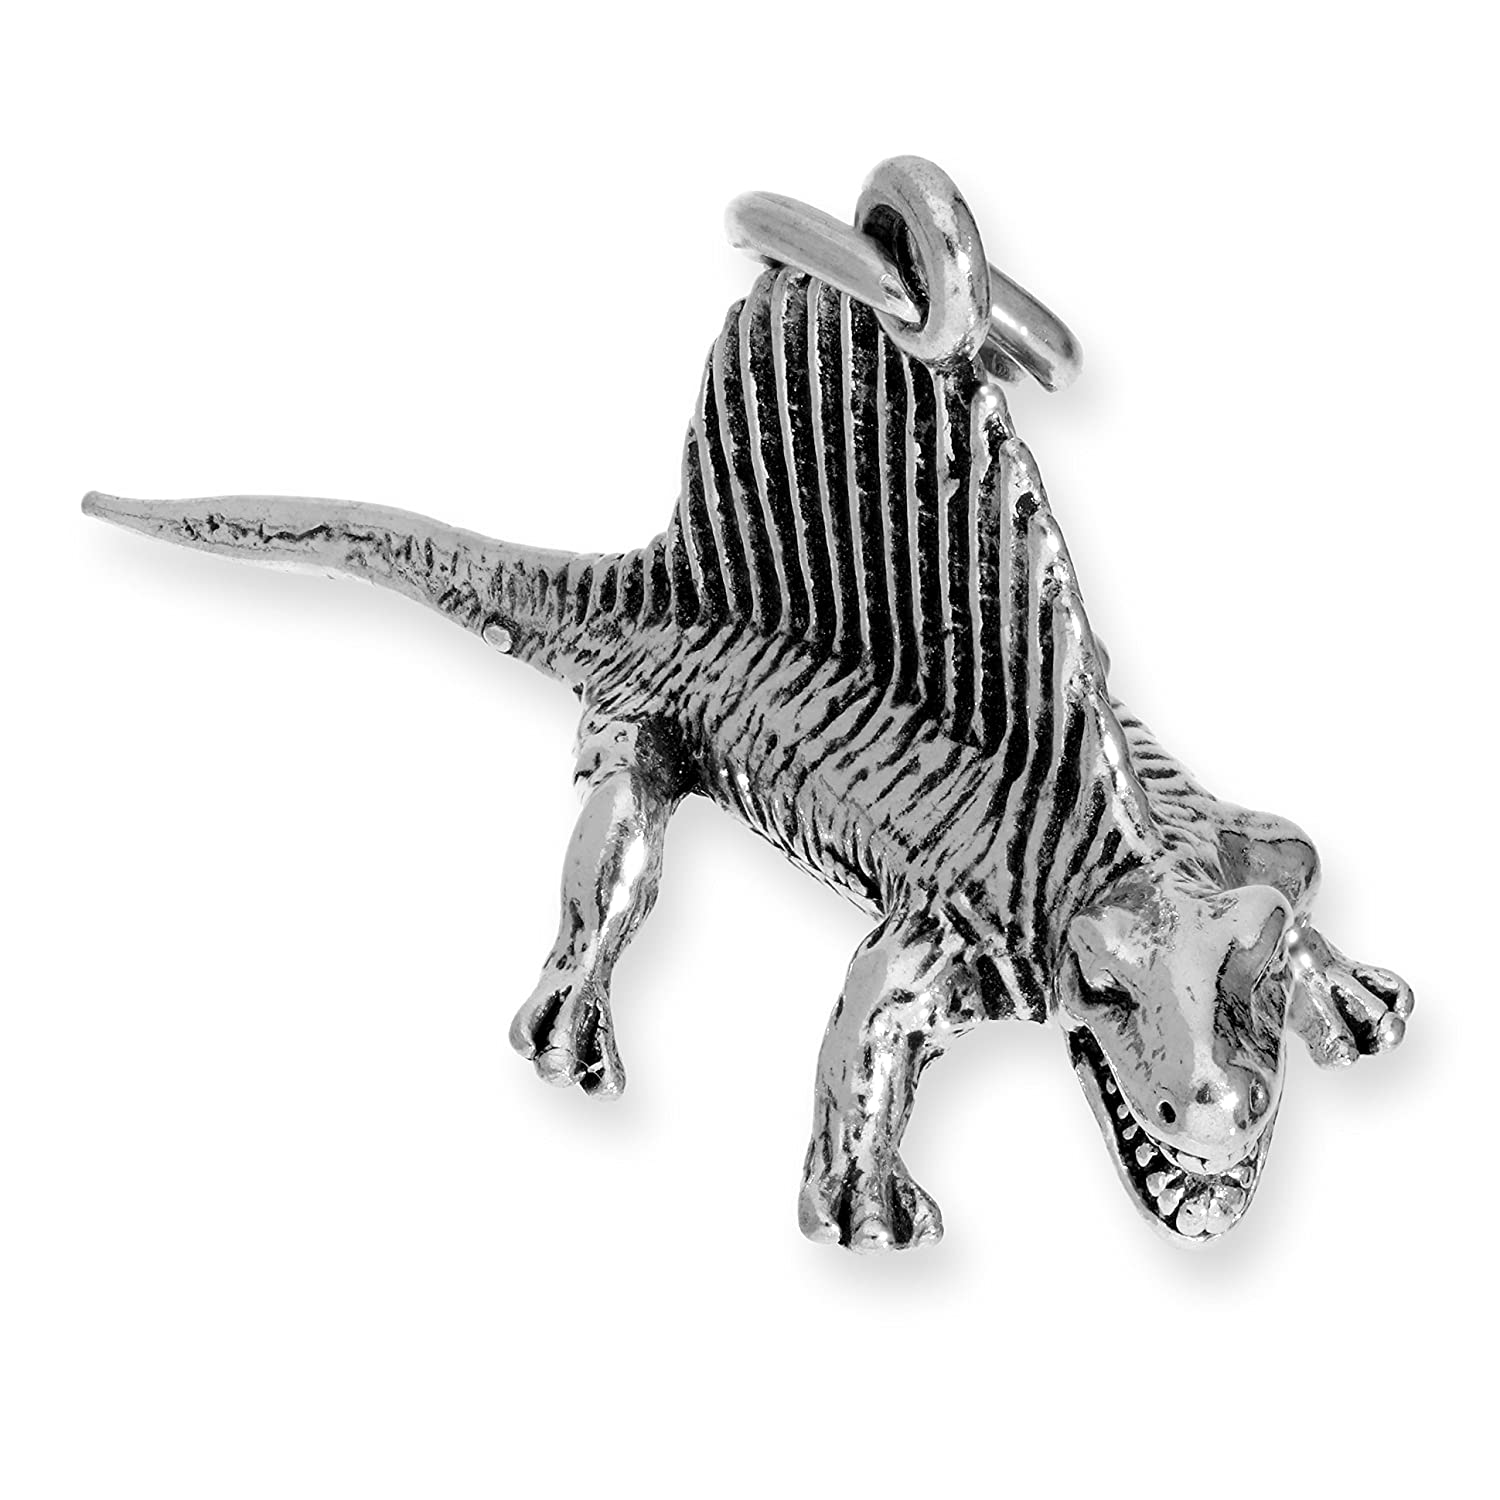 TheCharmWorks Sterling Silver Dimetrodon Dinosaur Charm